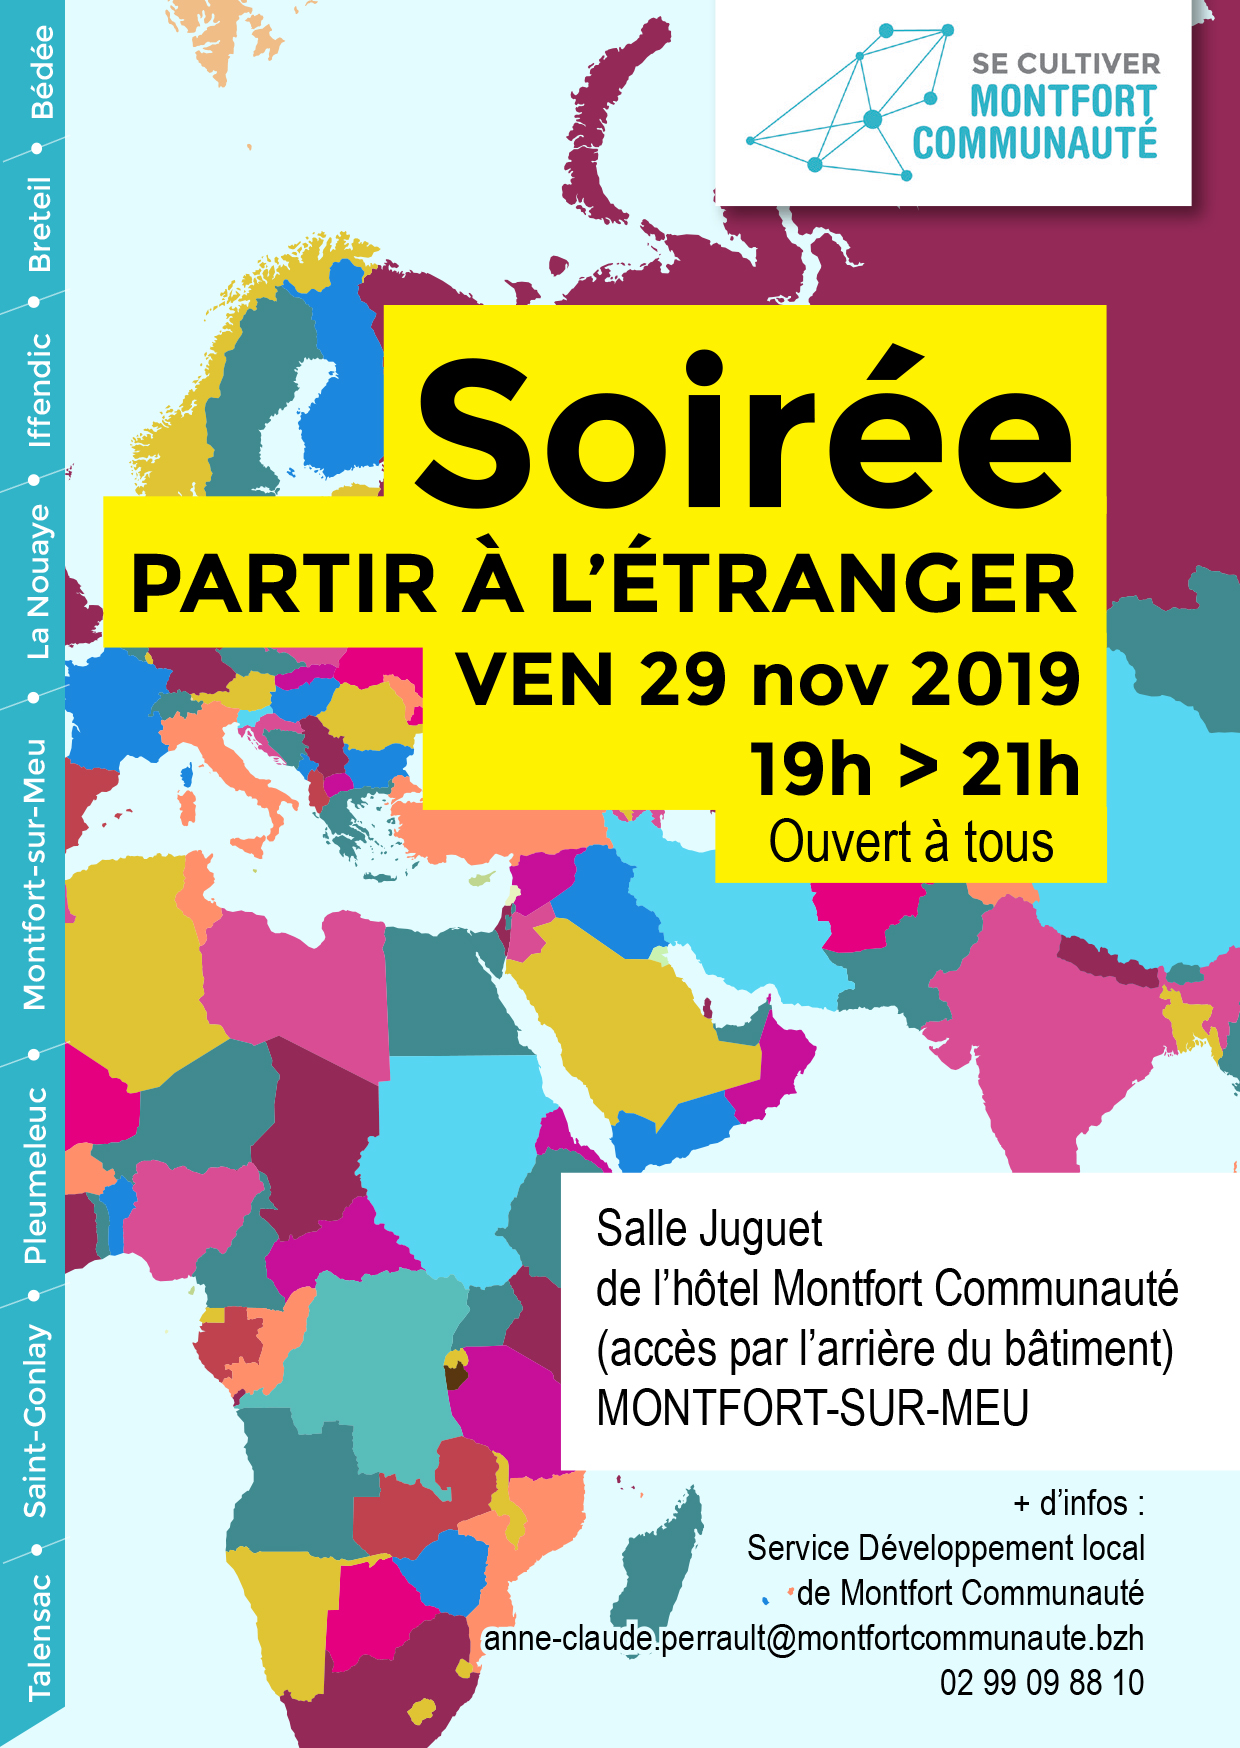 2019 Flyer Soiree Partiraletranger 1